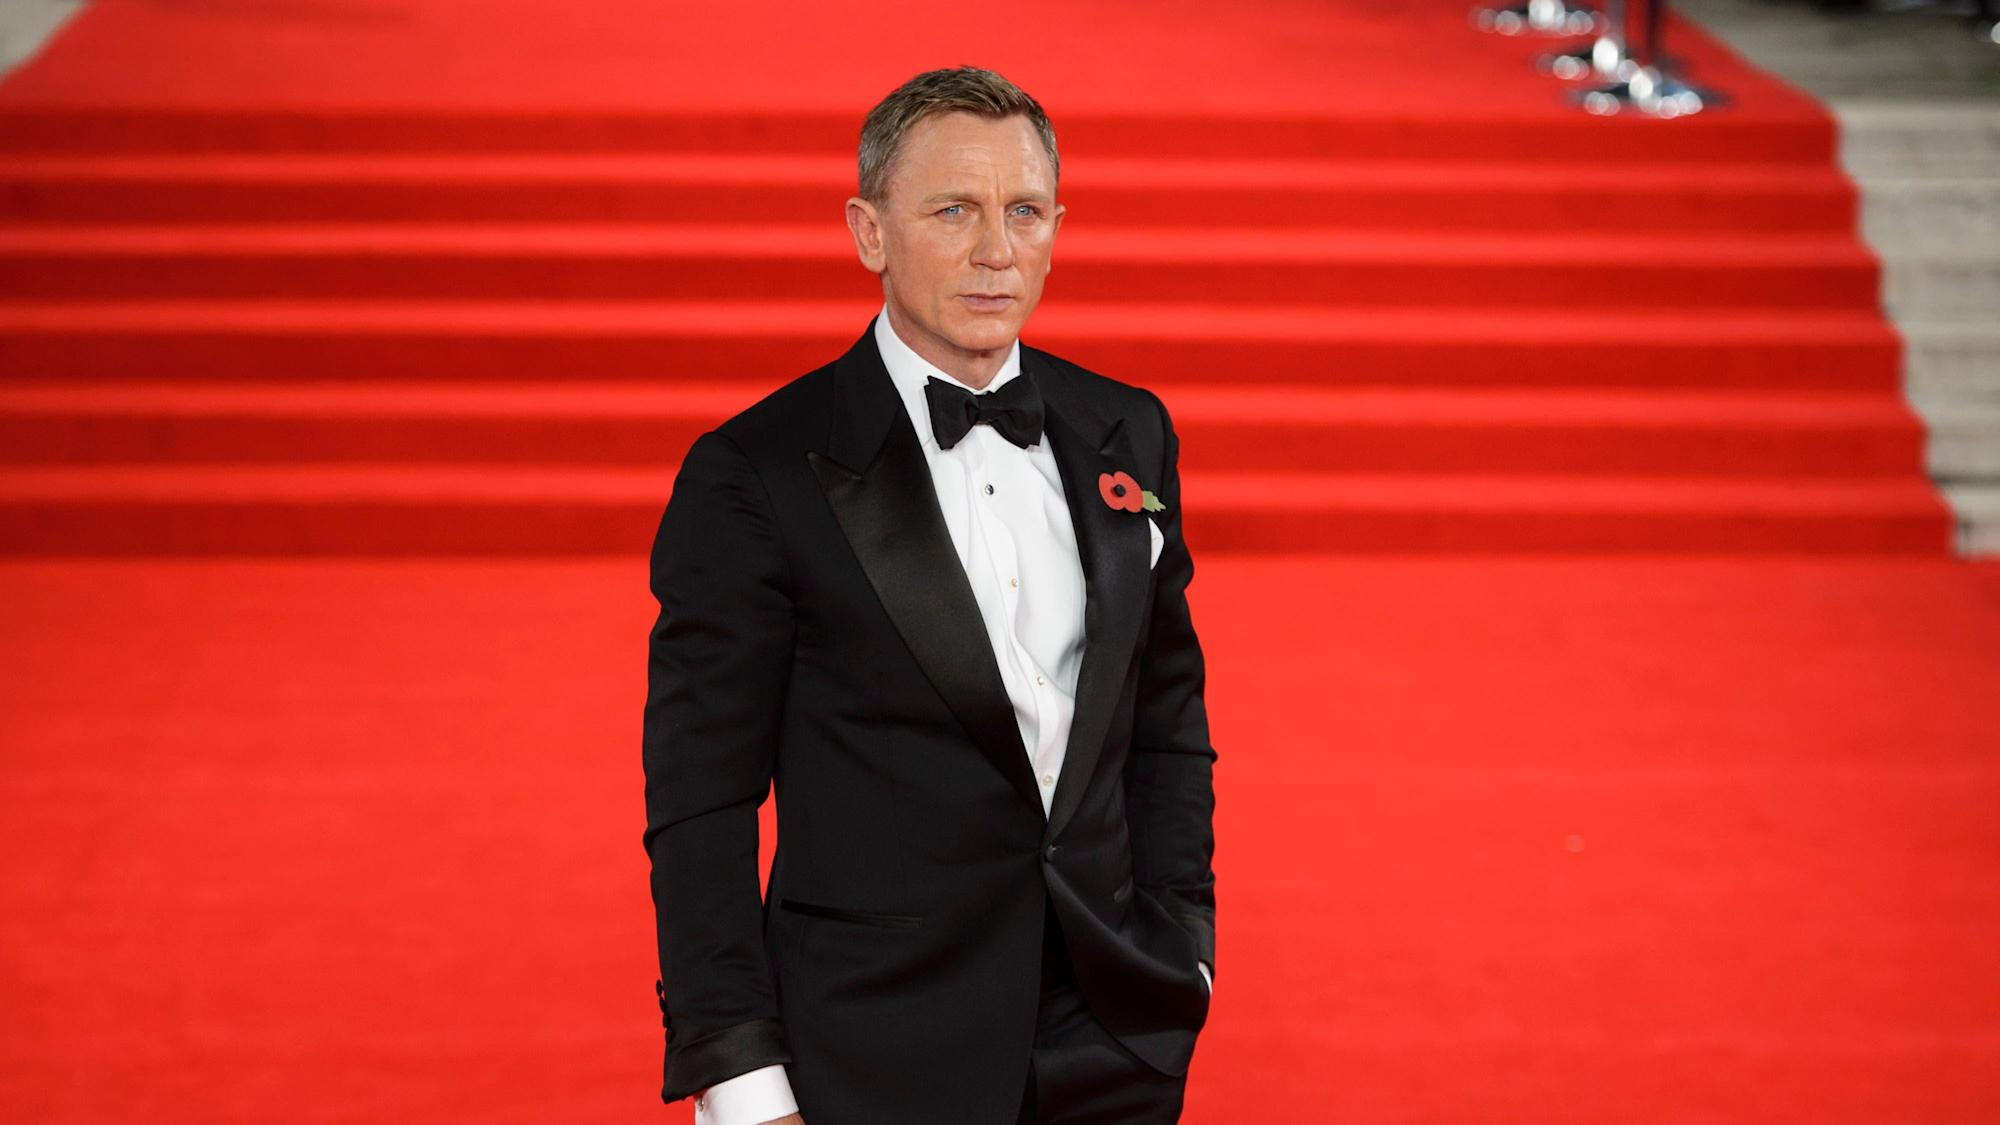 Daniel Craig: Films will be diminished without big screen experience